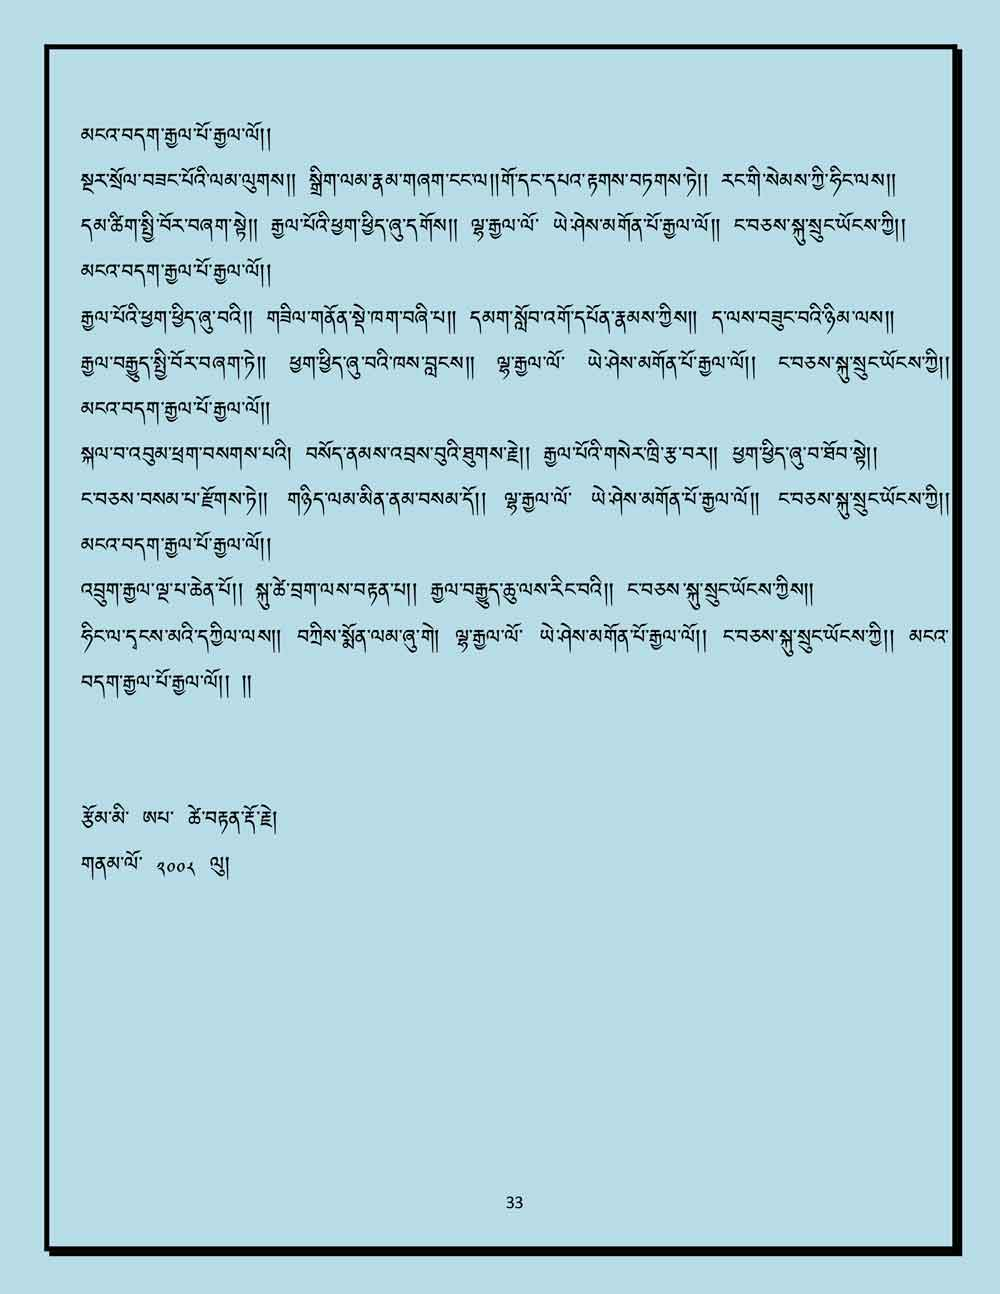 Ap-Tseten-Lyrics-33.jpg